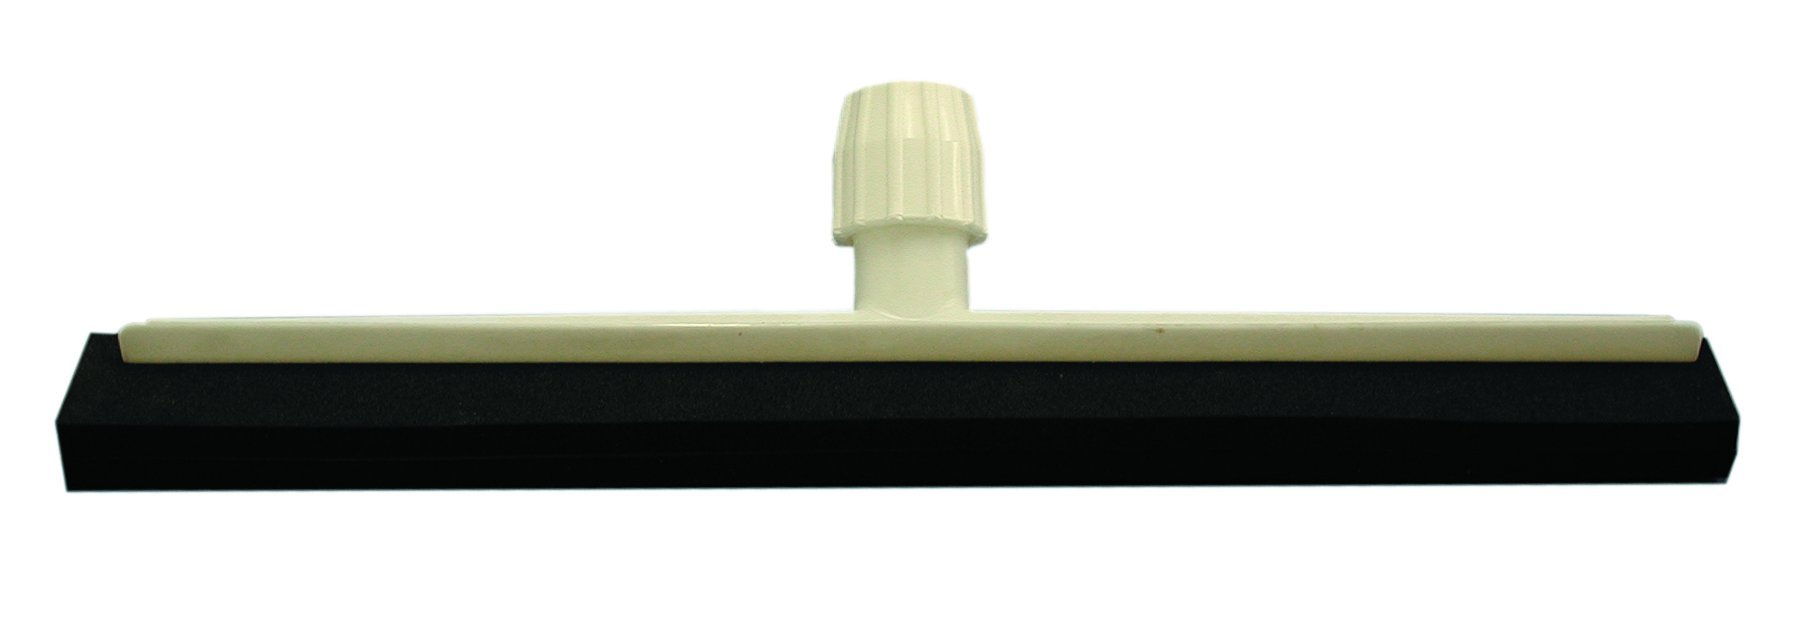 Magnolia Brush 8922 Soft Foam Rubber/Double Edge Plastic Frame Squeegee with Tapered/Square Socket, 22'' Length x 2'' Width, Black (Case of 10)